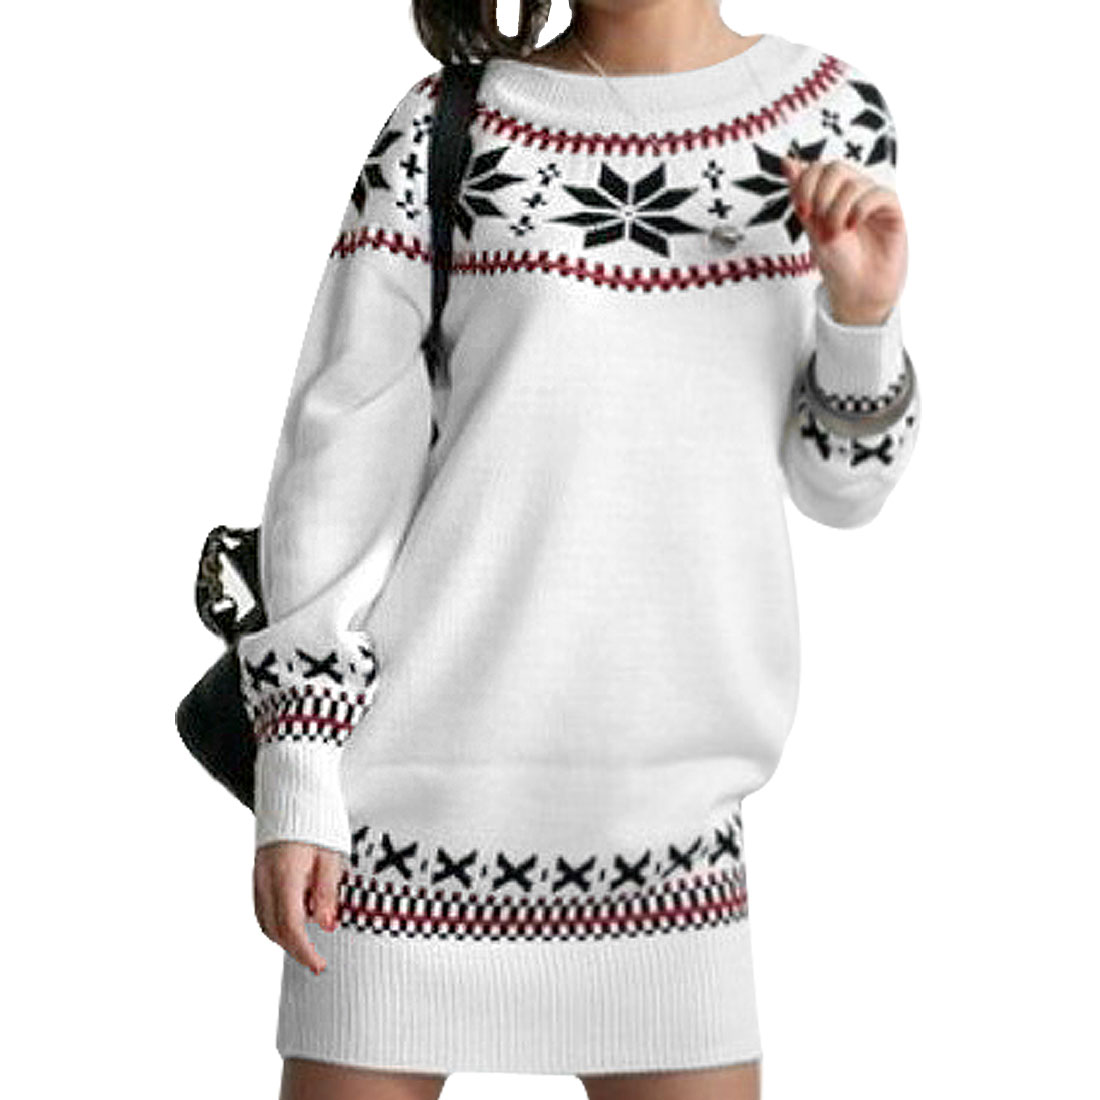 Ladies Snowflake Print Round Neck Long Sleeves Pullover Sweater White XS